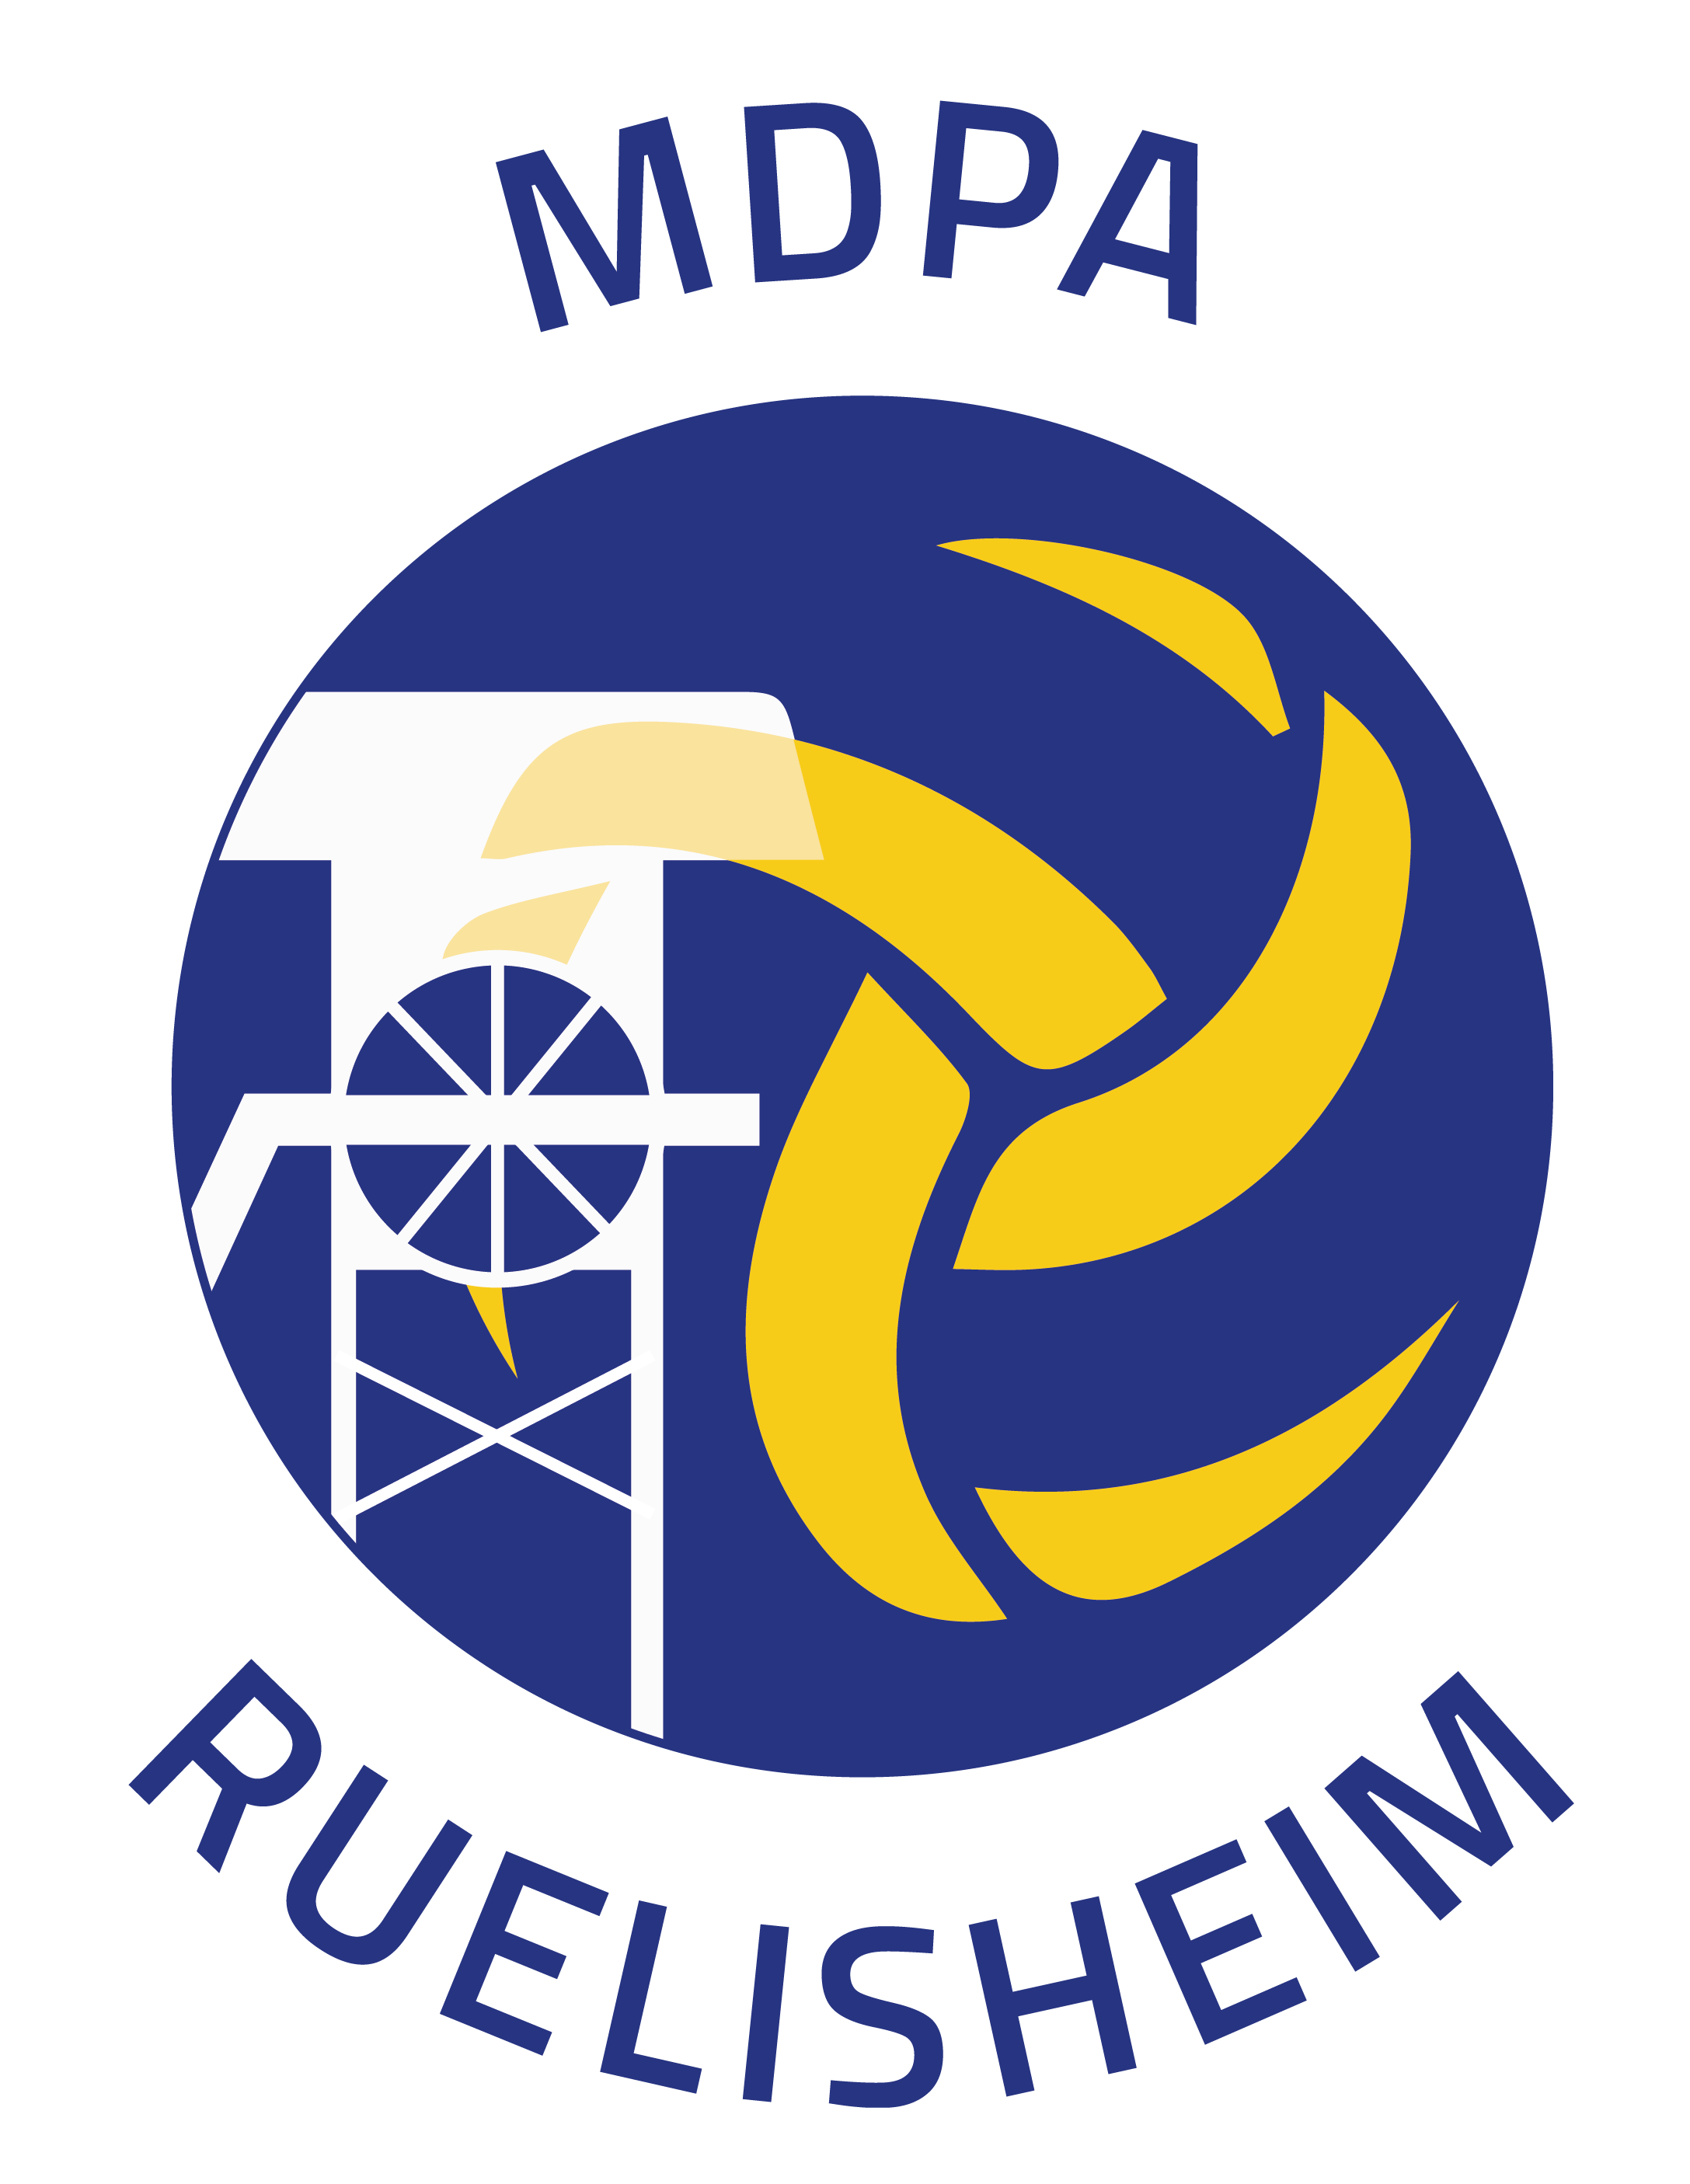 Logo MDPA VOLLEY RUELISHEIM